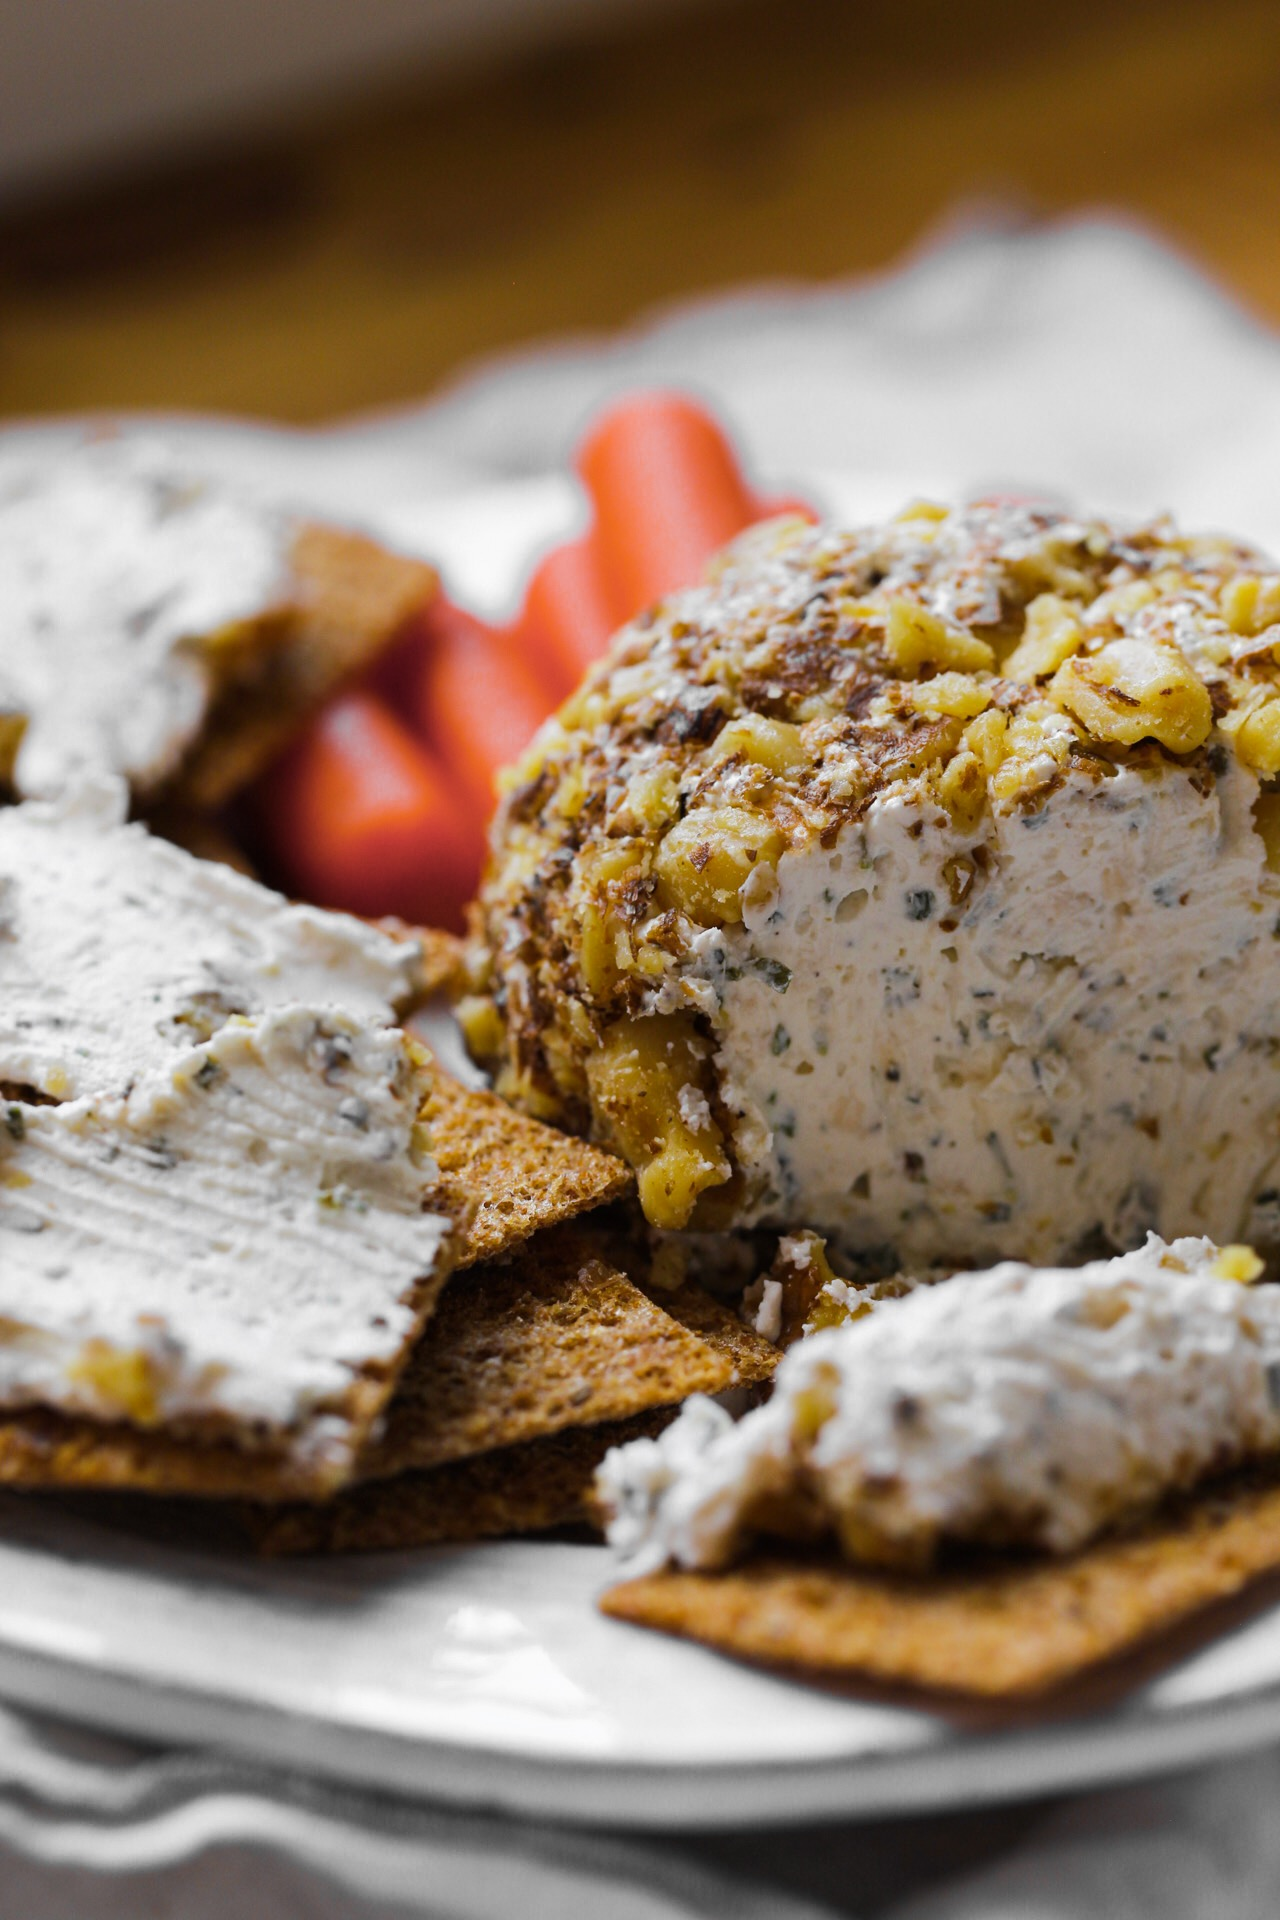 garlic herb cheese ball